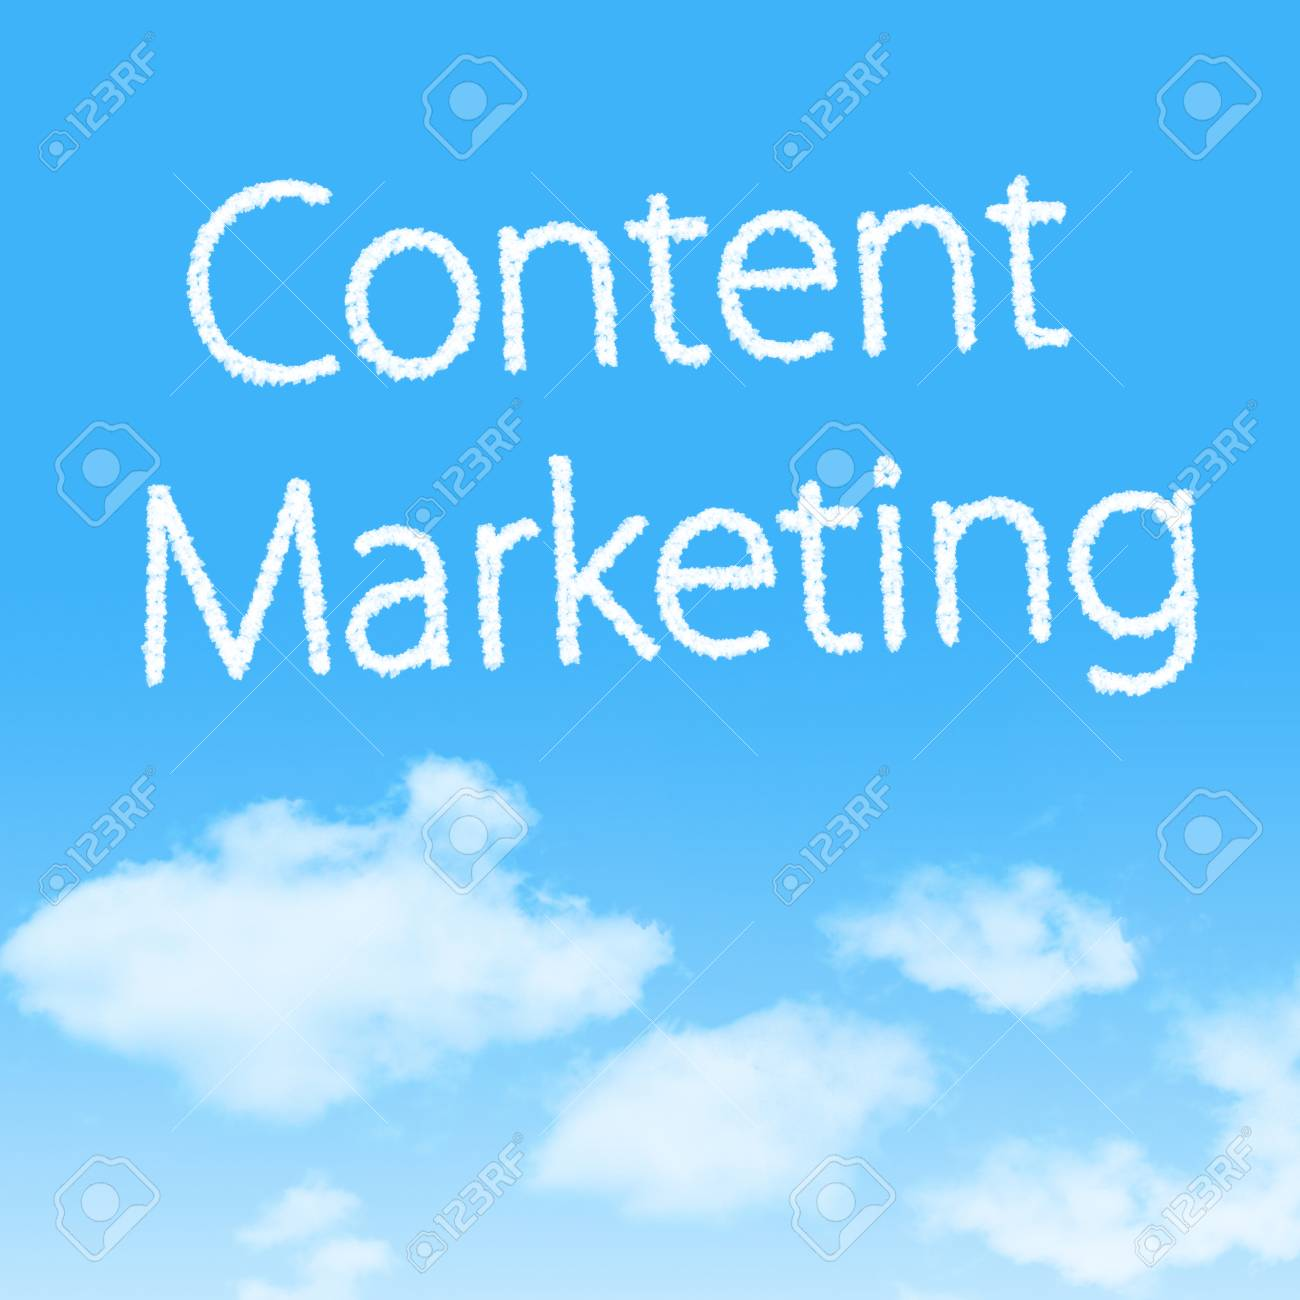 Content Marketing cloud icon with design on blue sky background Stock Photo - 27242467